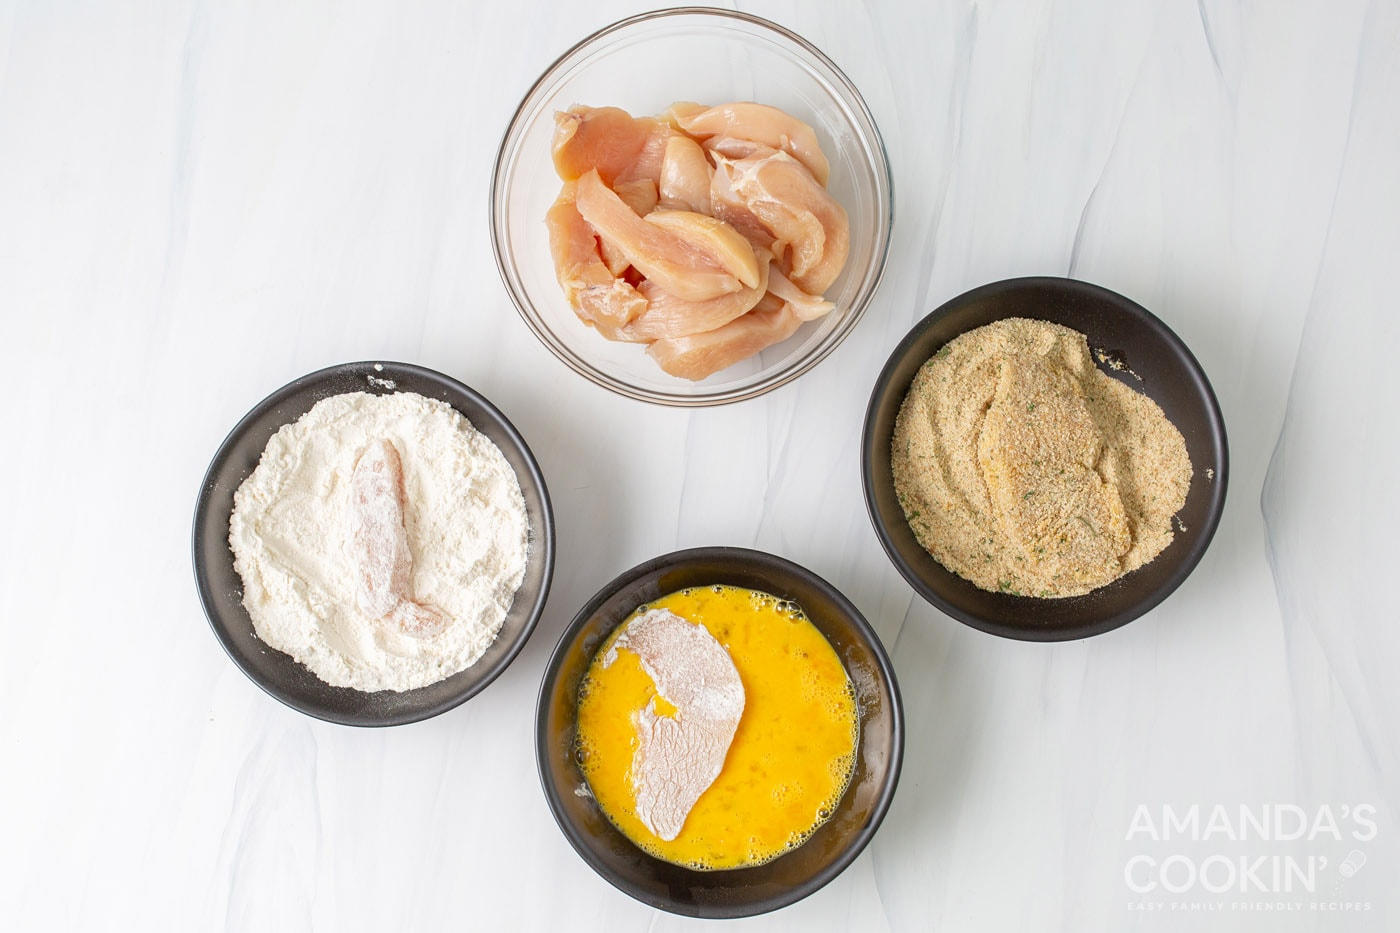 flour, eggs,, breadcrumbs, and chicken in bowls